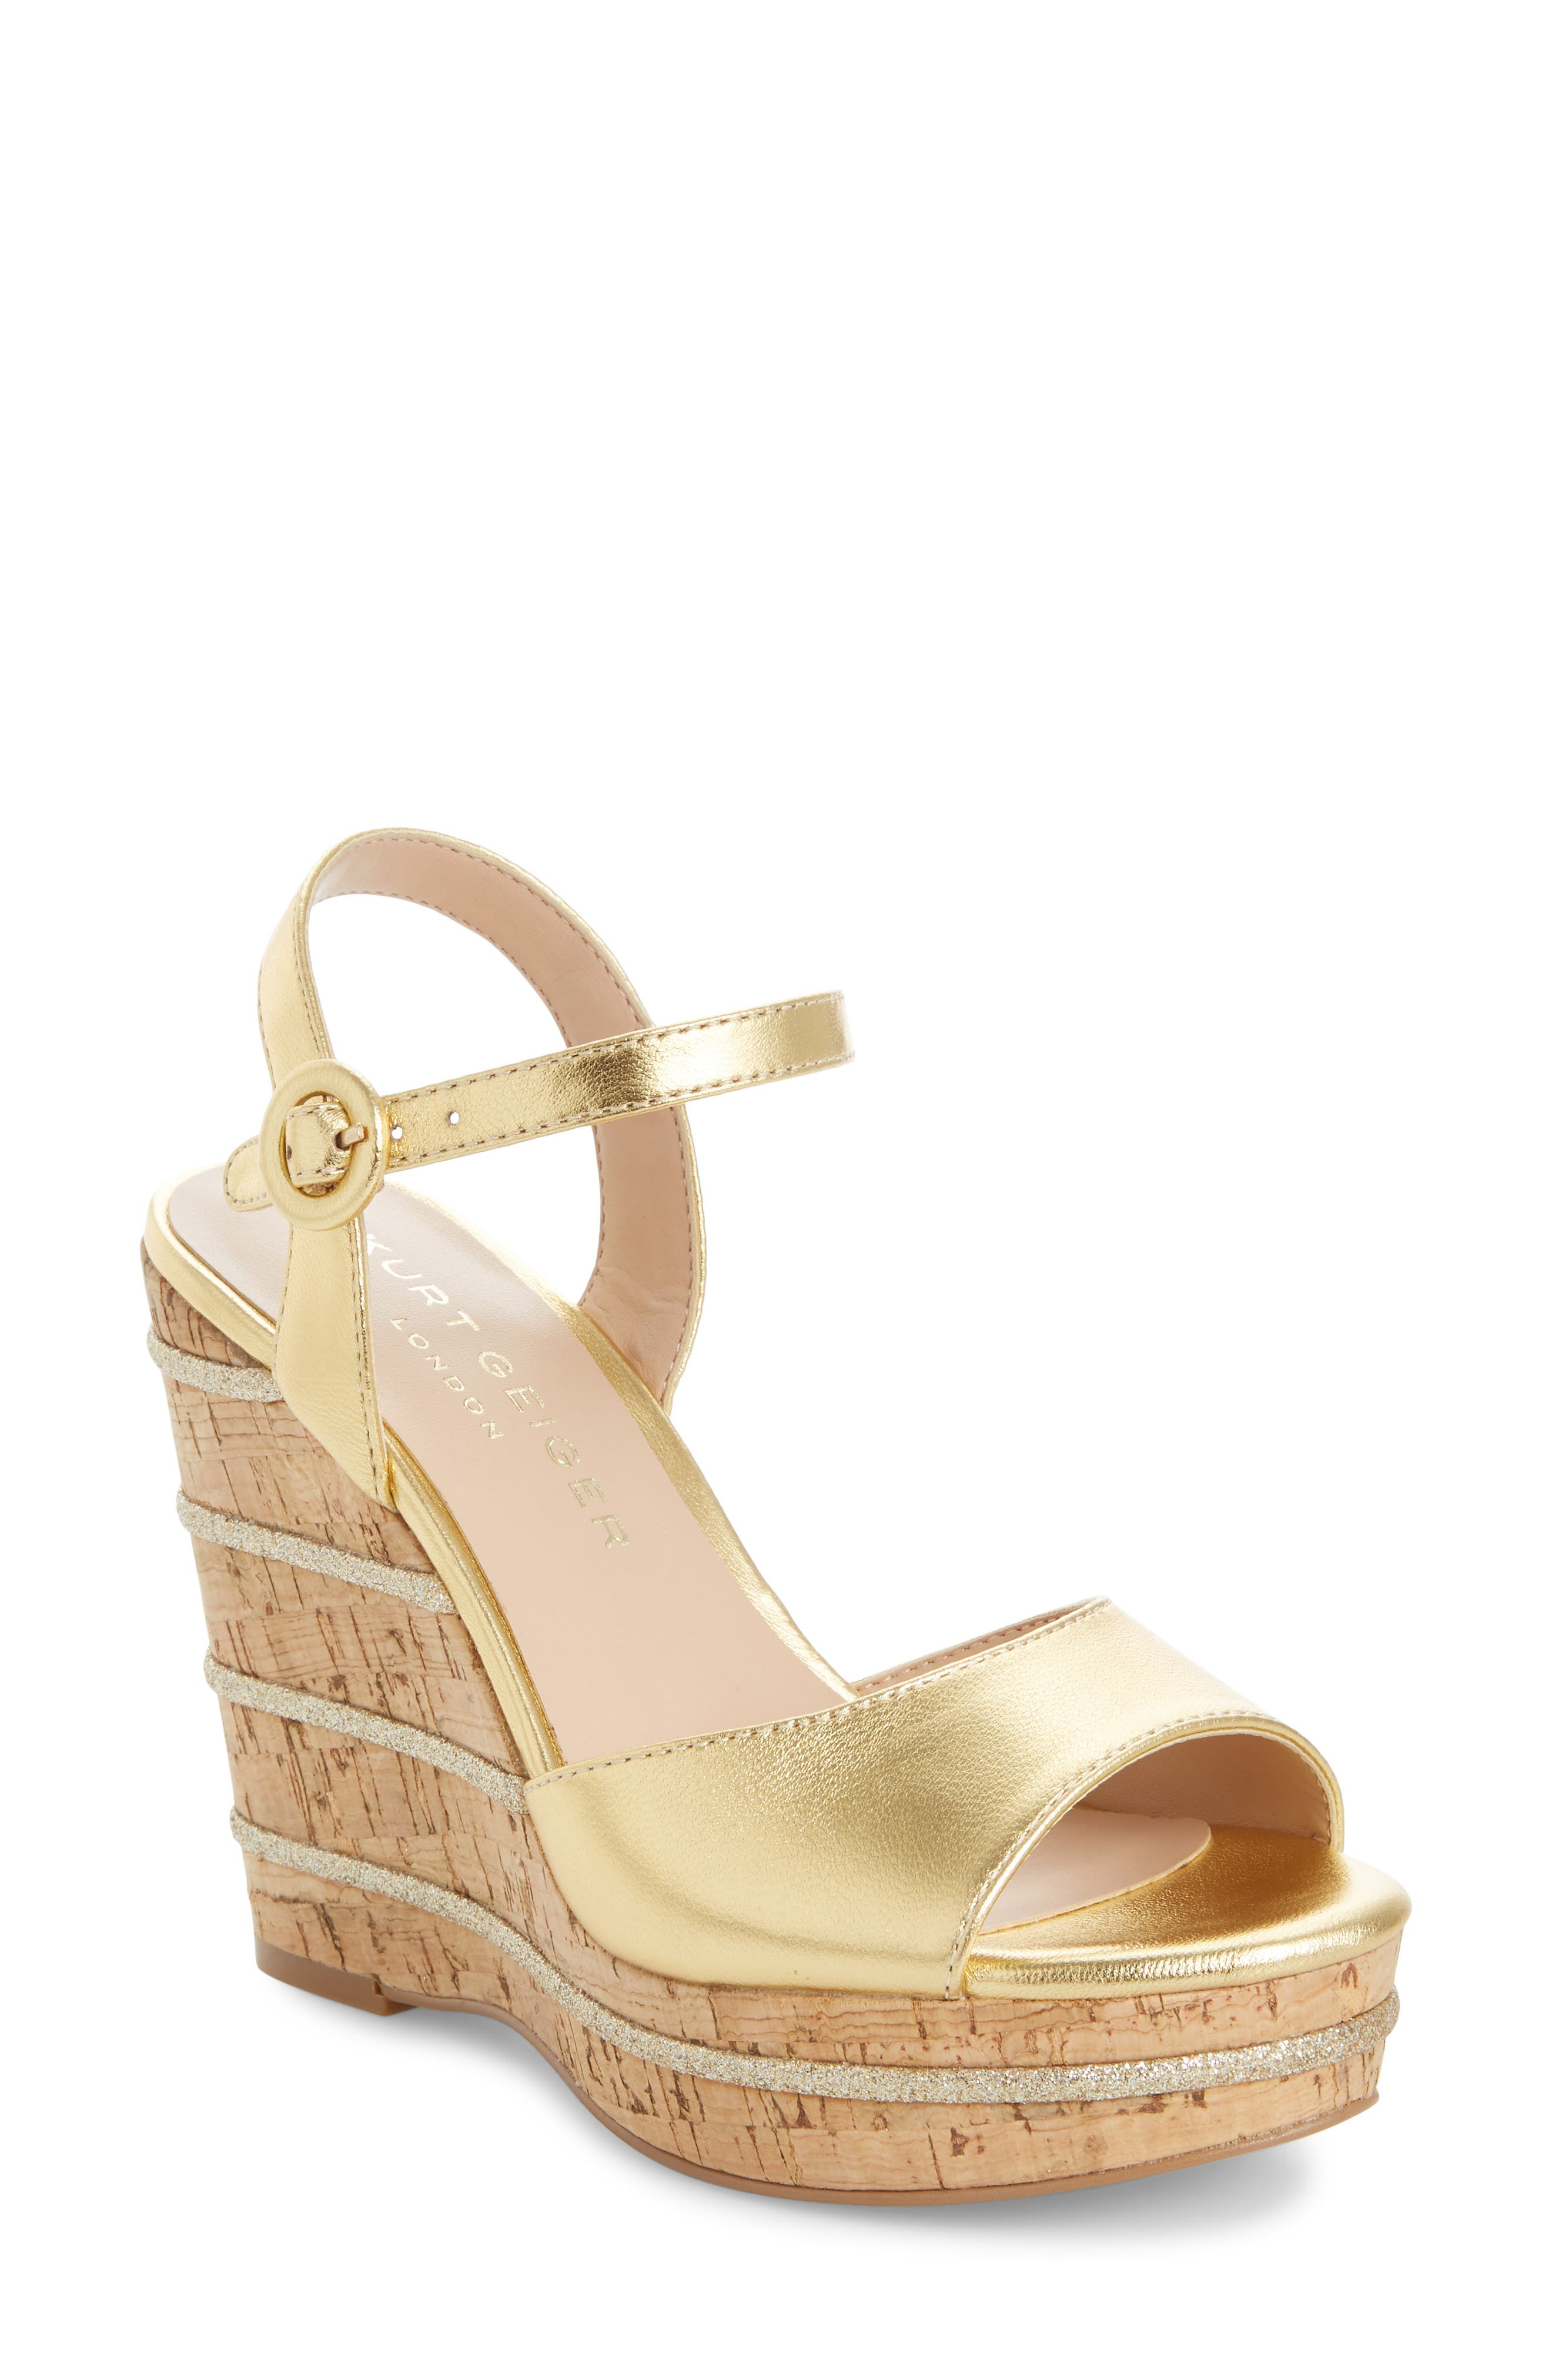 e28a2adcf Kurt Geiger London Ally Wedge Platform Sandal, Metallic